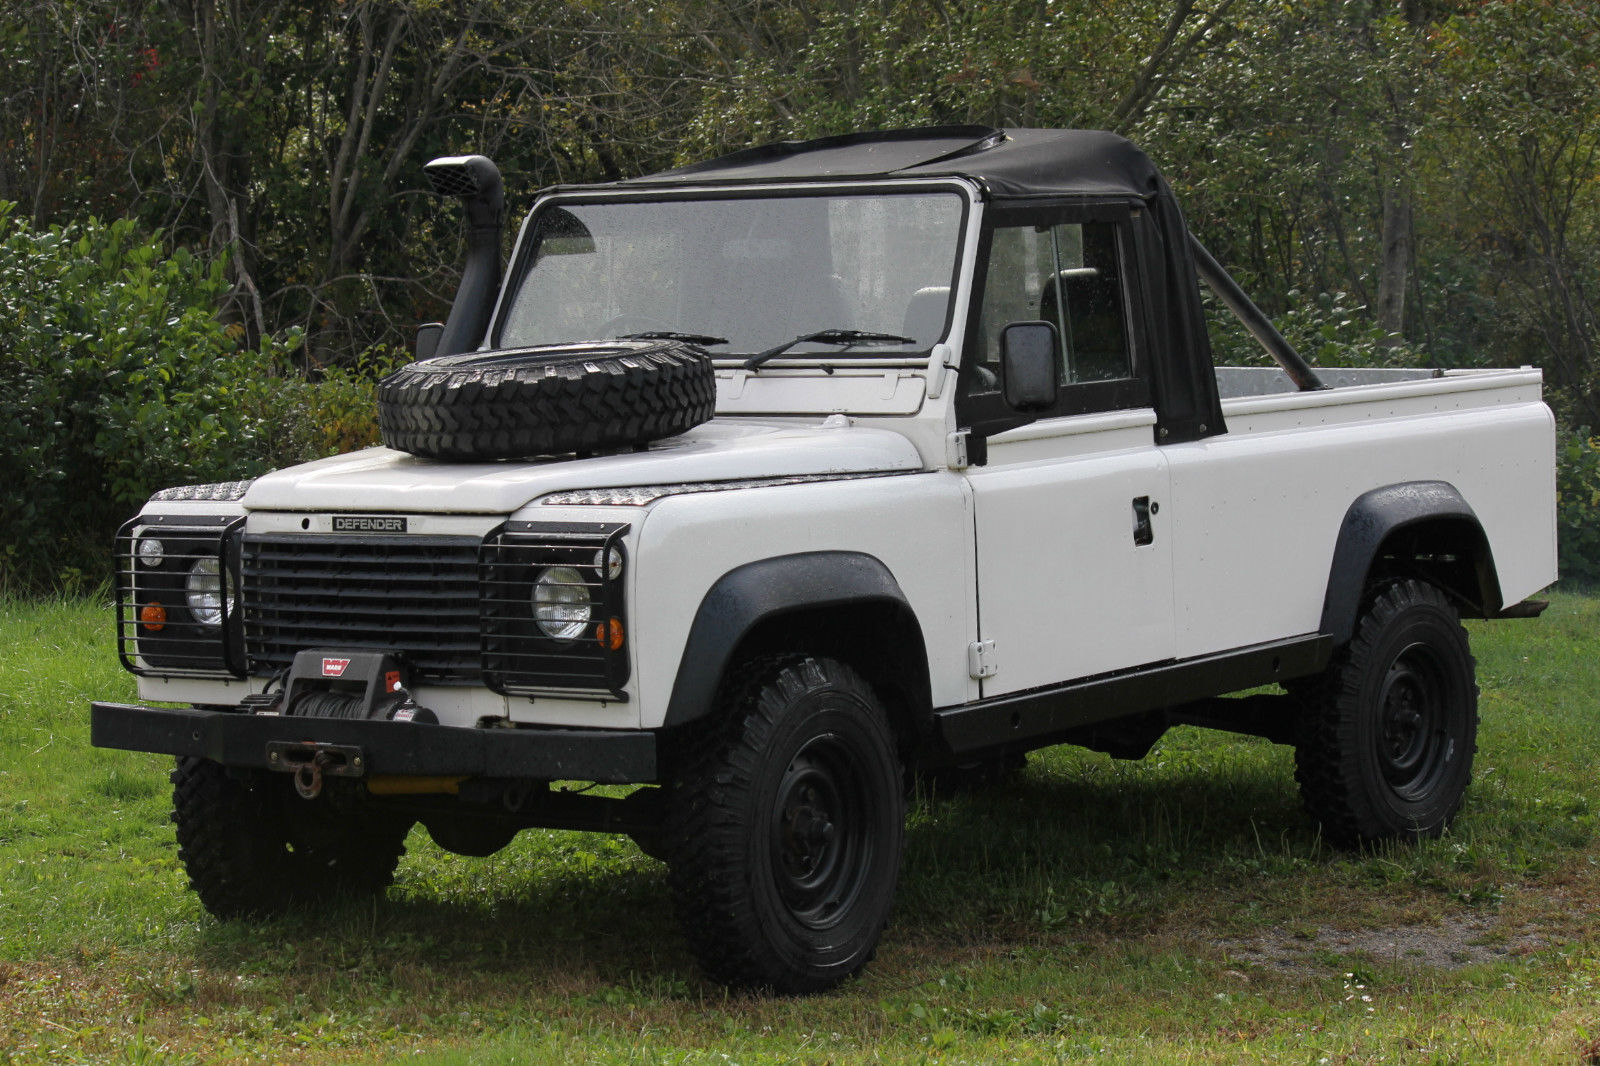 1984 land rover defender 110 200tdi turbo diesel soft top pickup truck. Black Bedroom Furniture Sets. Home Design Ideas